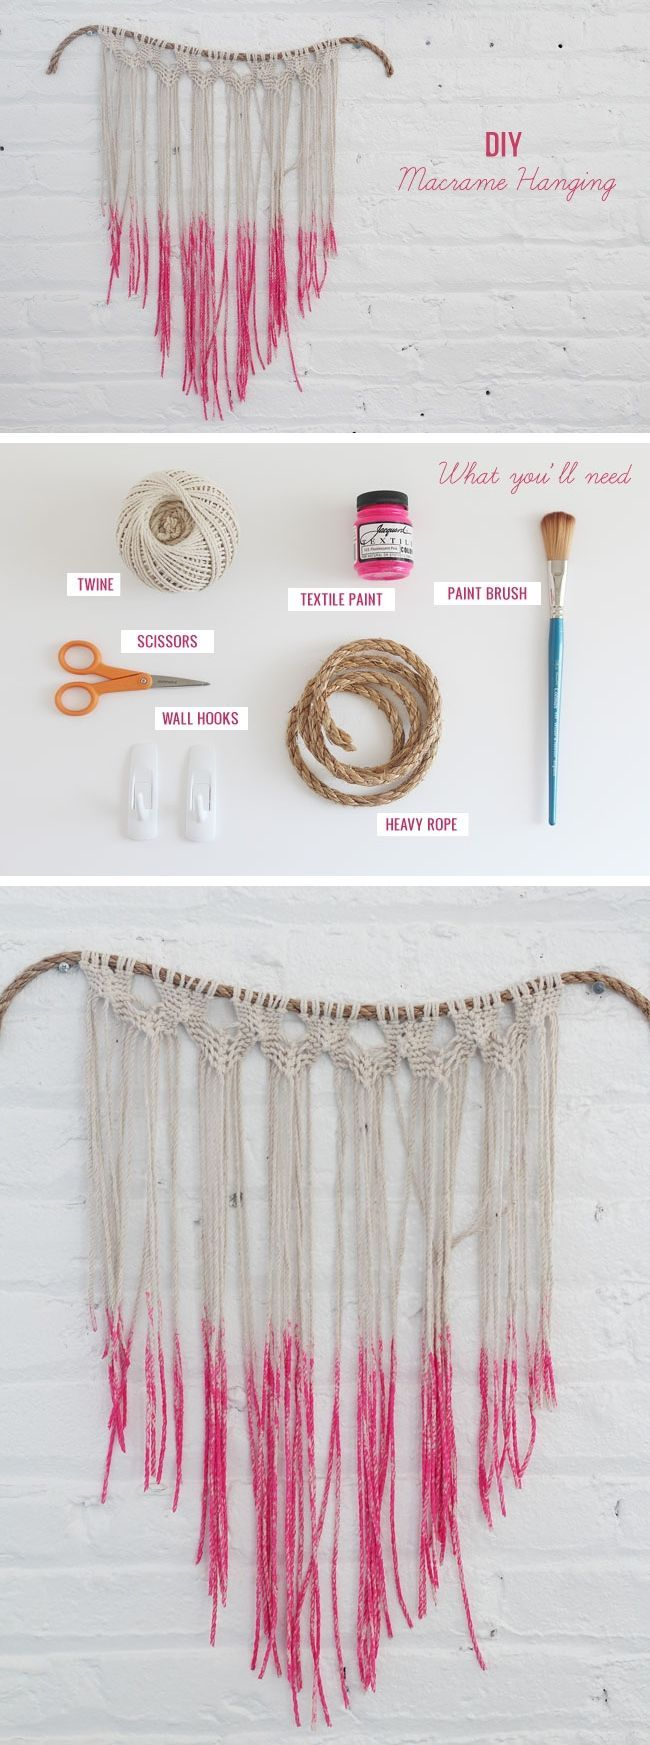 6 Inspiring DIY Projects for the Boho Bride